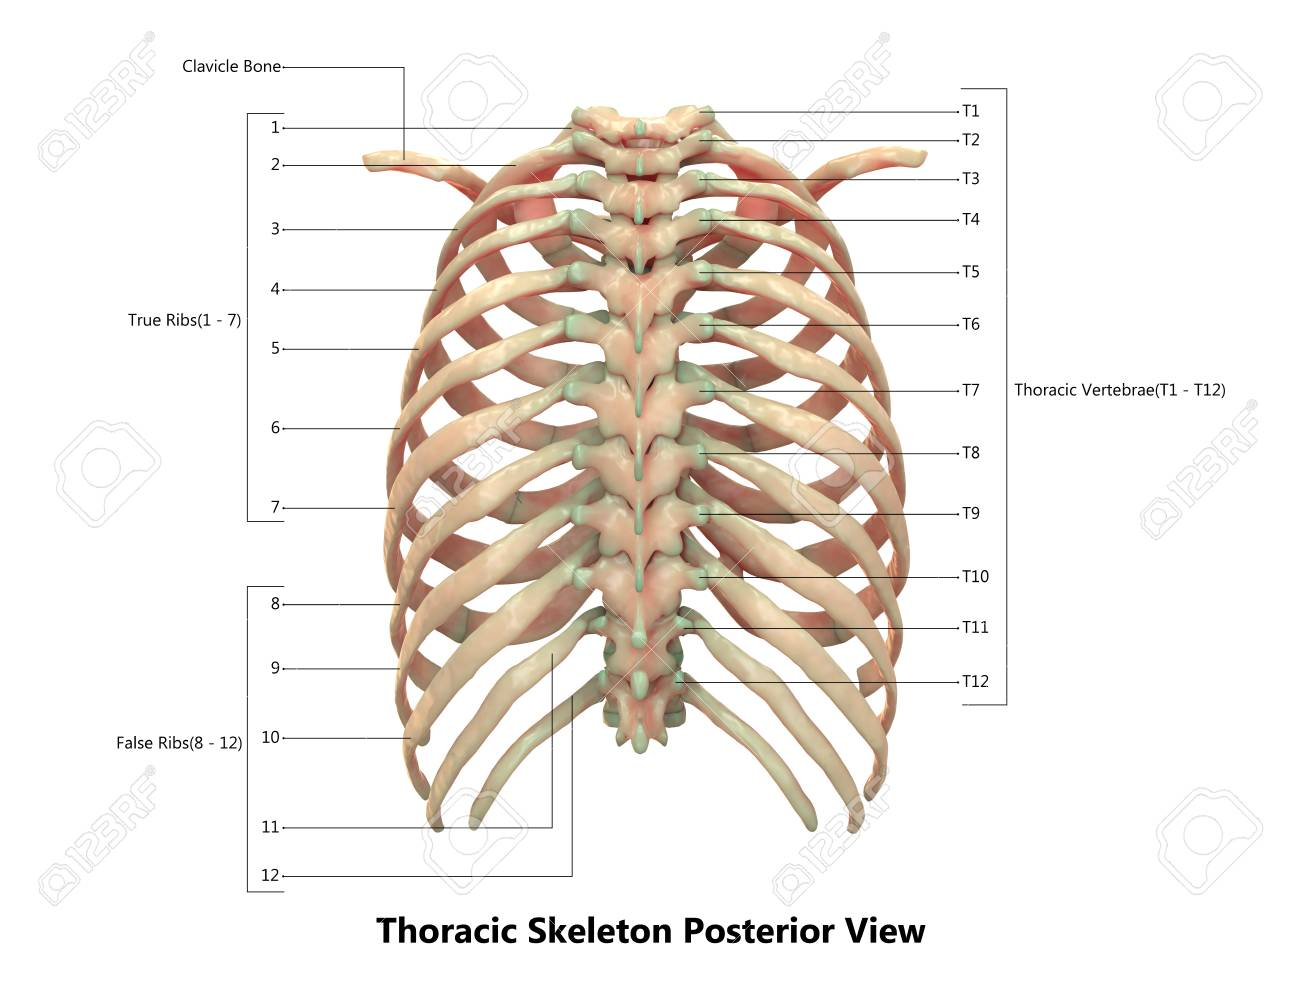 Human Skeleton System Thoracic Skeleton Anatomy (Posterior View ...